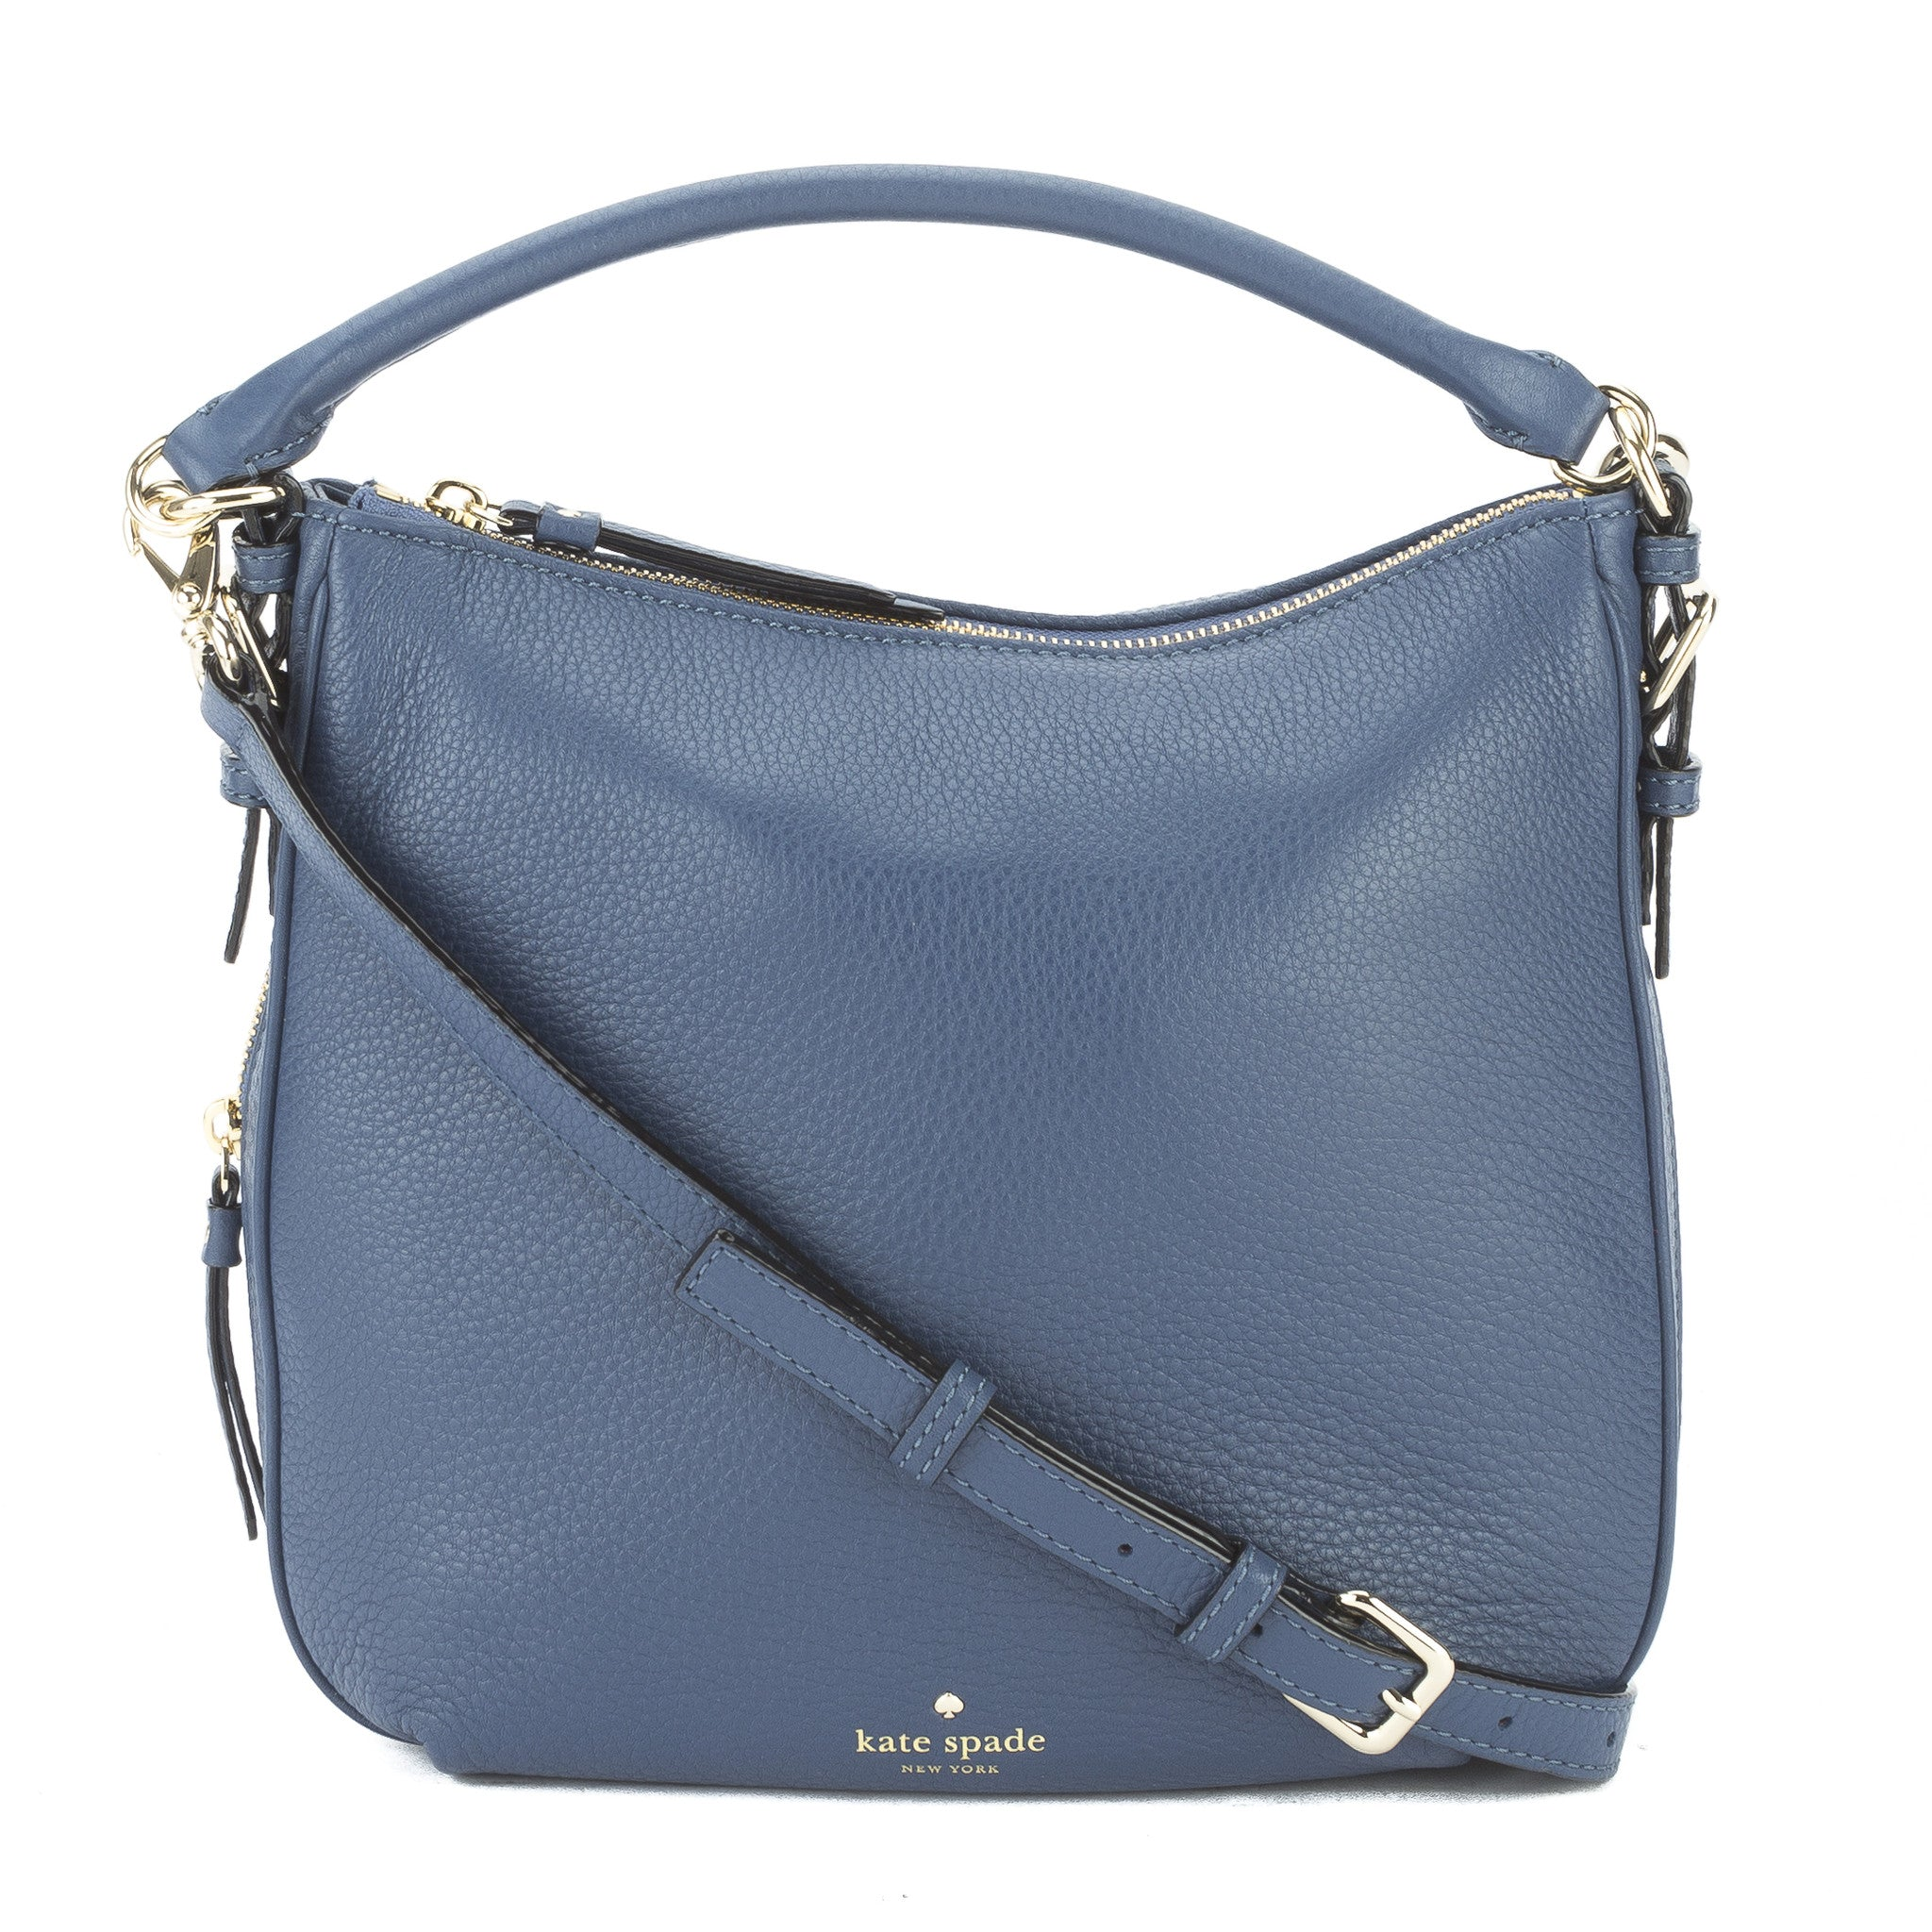 643650fa483c28 Kate Spade Moonlight Blue Leather Cobble Hill Small Ella Bag New with Tags